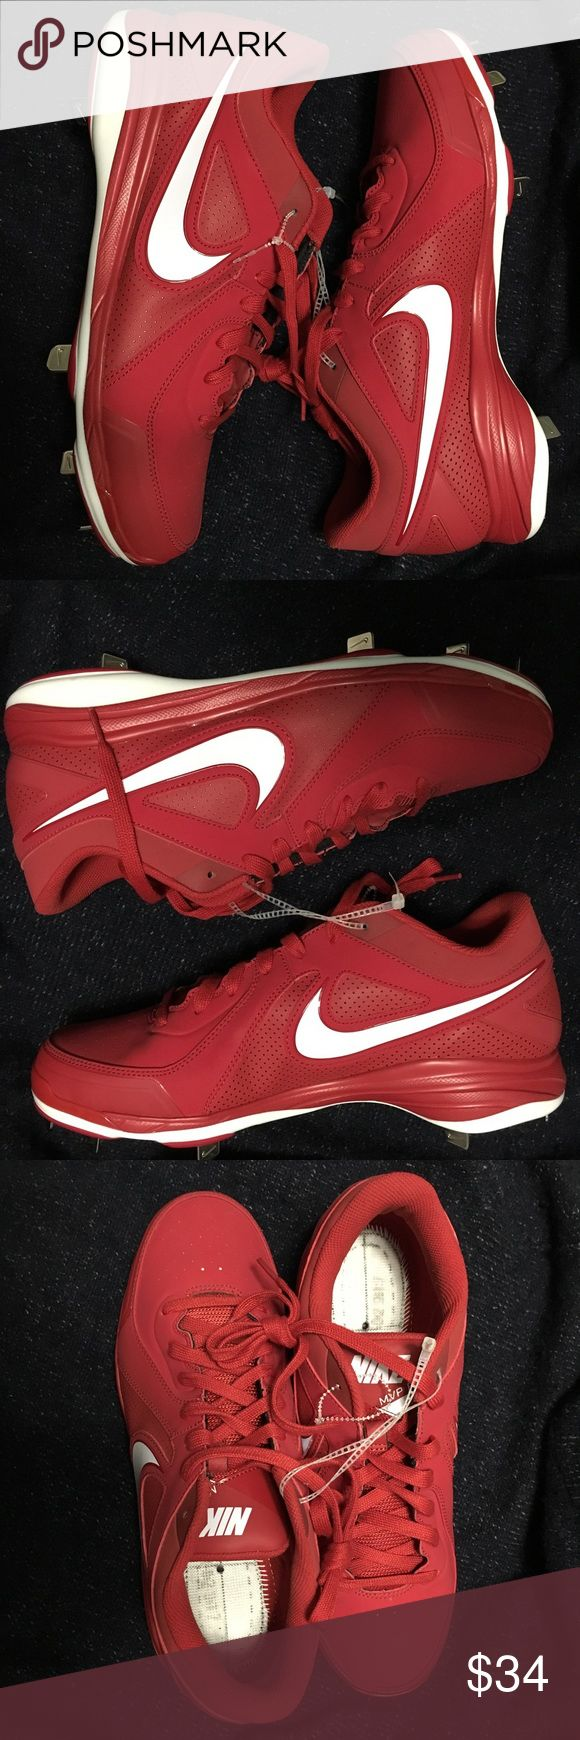 Nike Pro MVP Metal Baseball Cleats Size 12.5 These look brand new.  Please see pictures for details.  A great pair of red Nike MVP Pro metal baseball cleats.  Perfect for you or as a gift. Nike Shoes Athletic Shoes